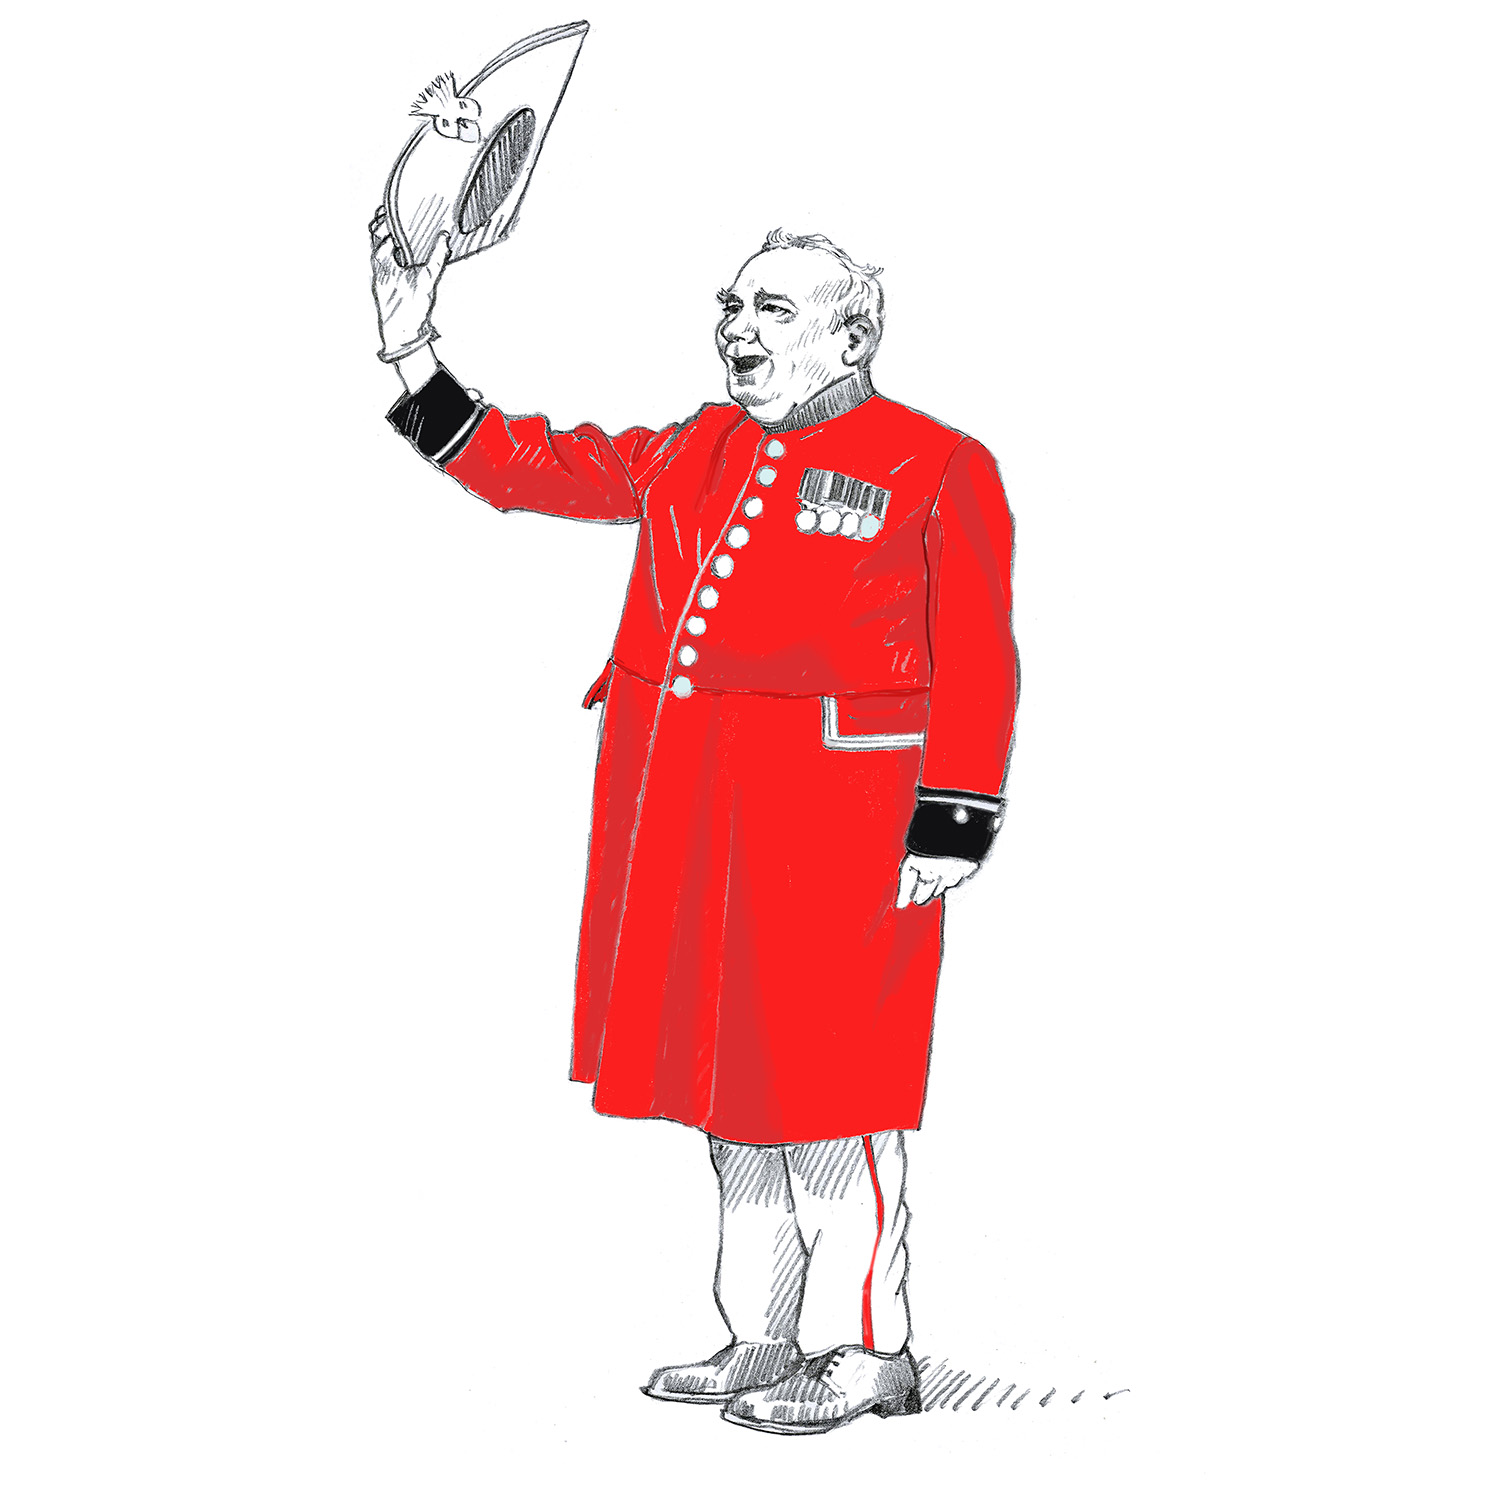 Chelsea Pensioner at Royal Hospital Chelsea. Three Cheers for the founder.